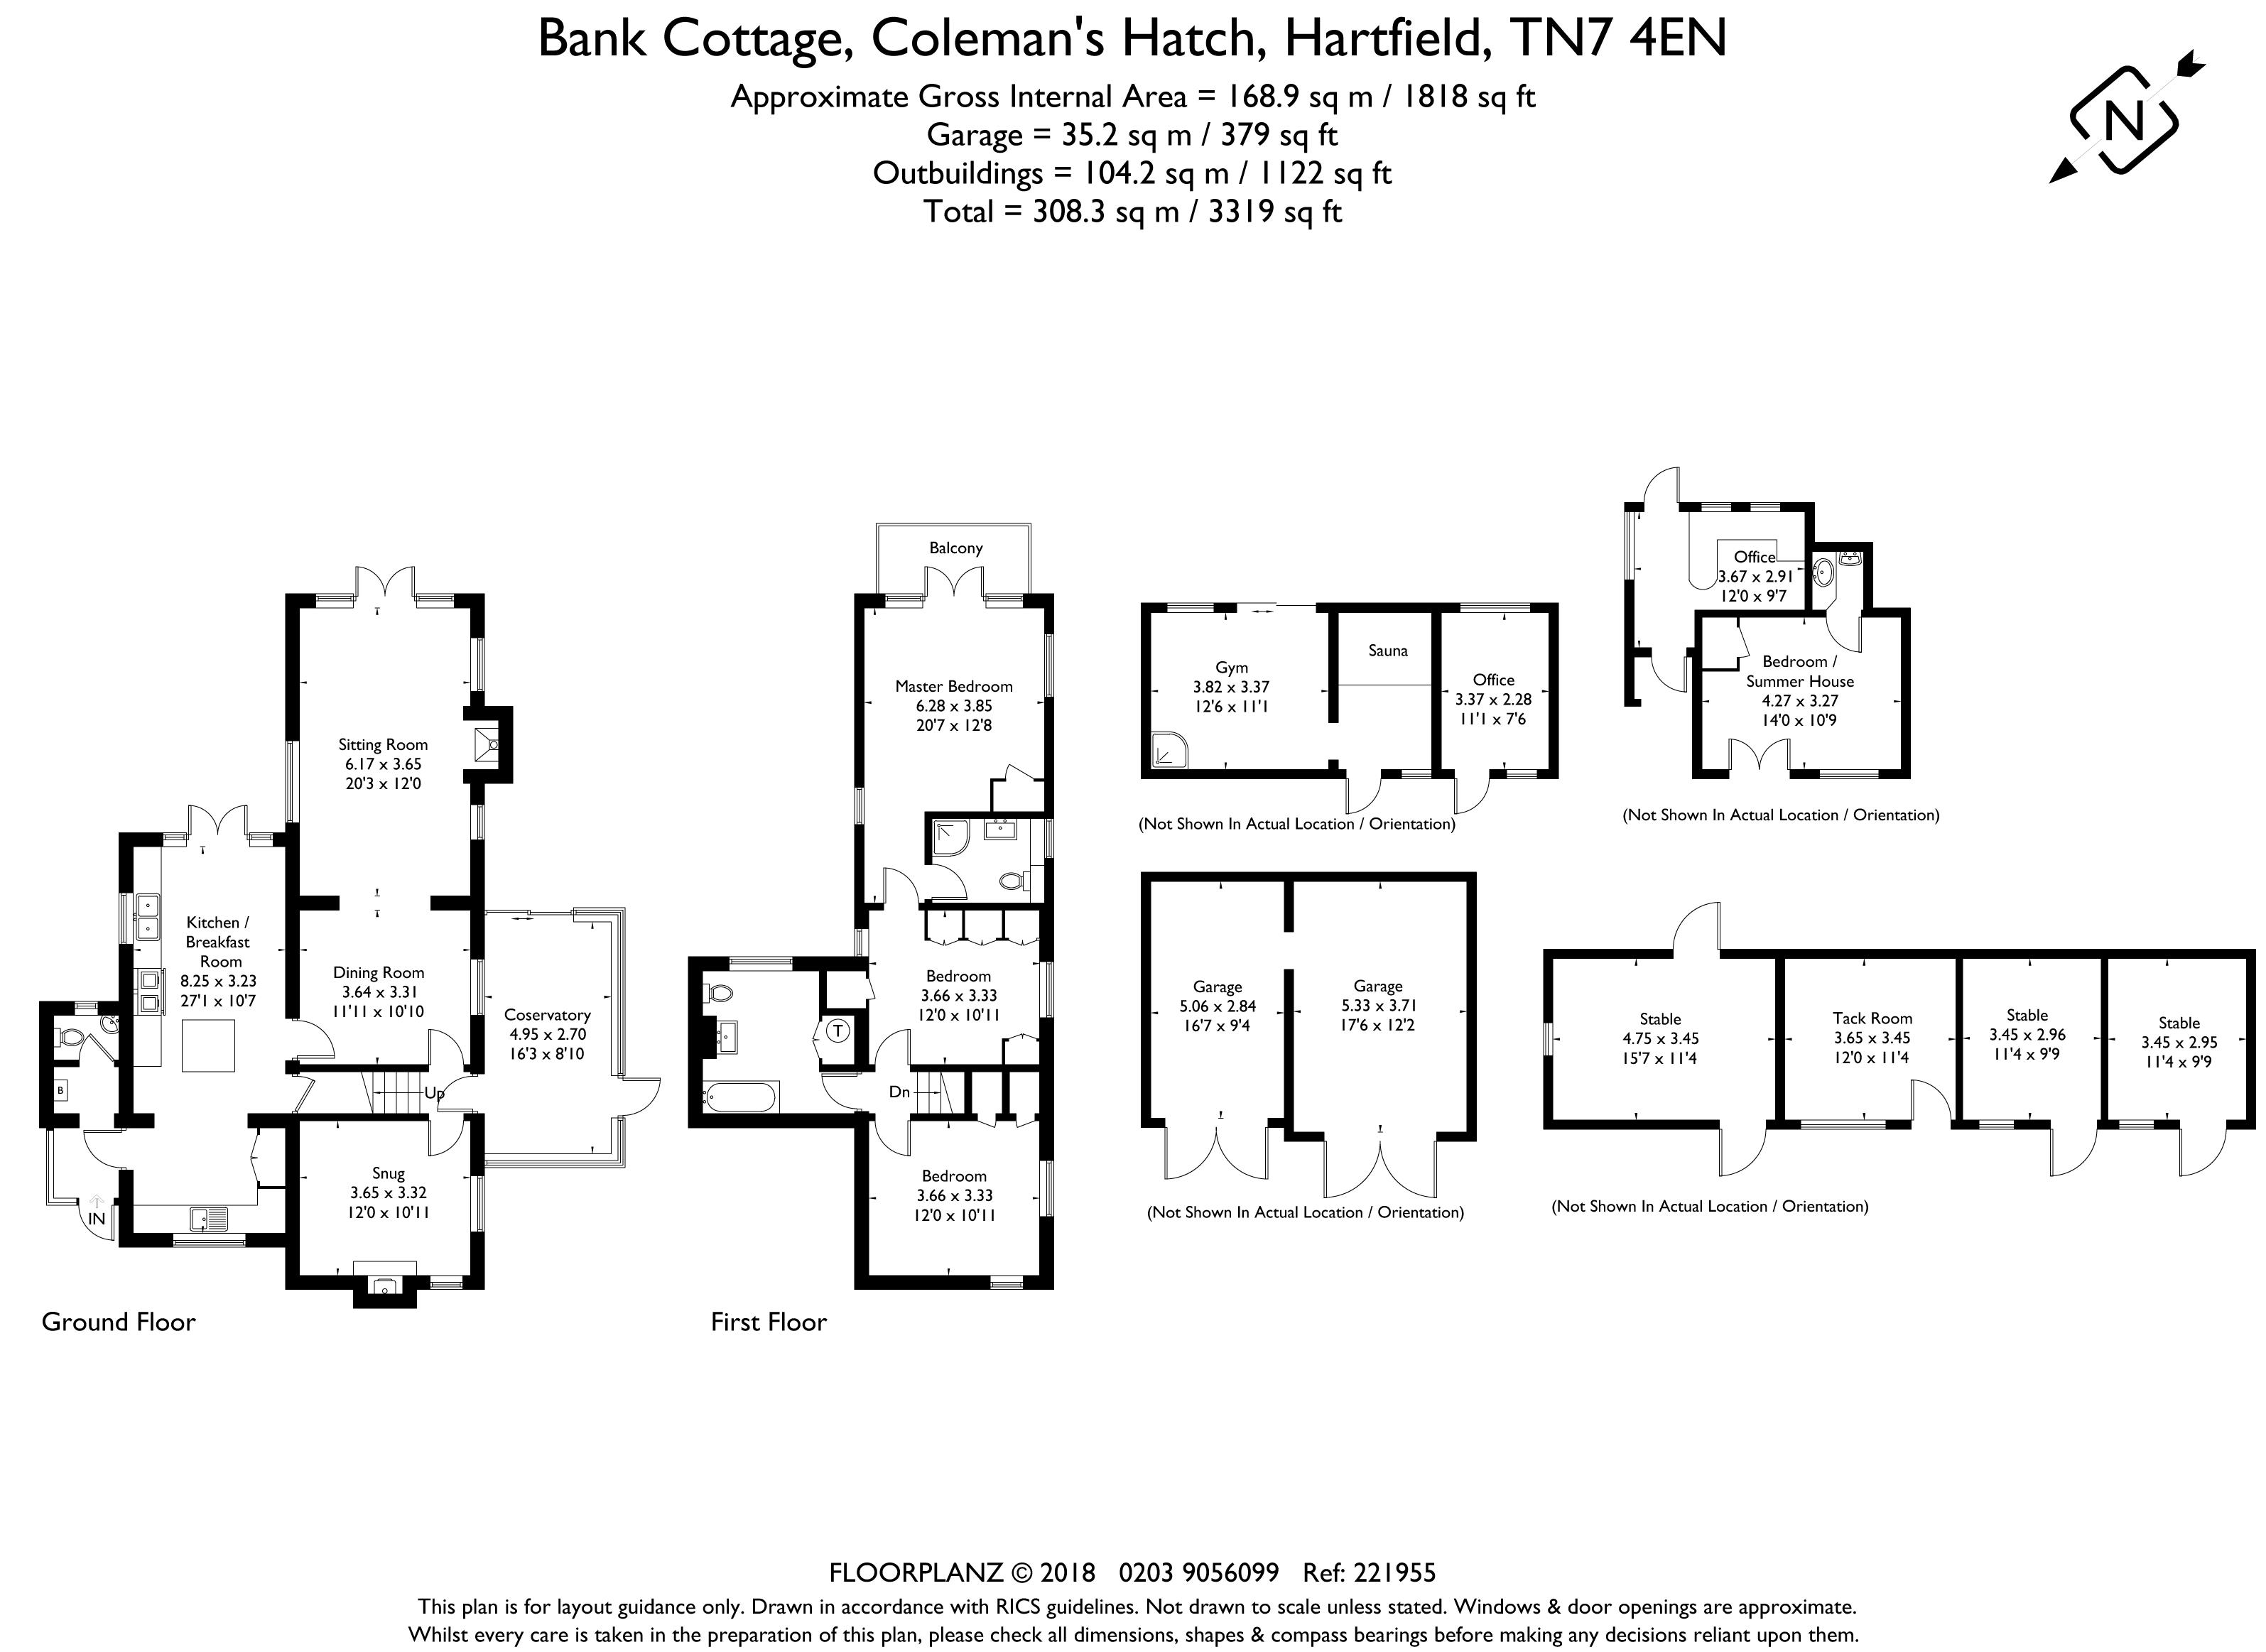 Bank Cottage Floorplan